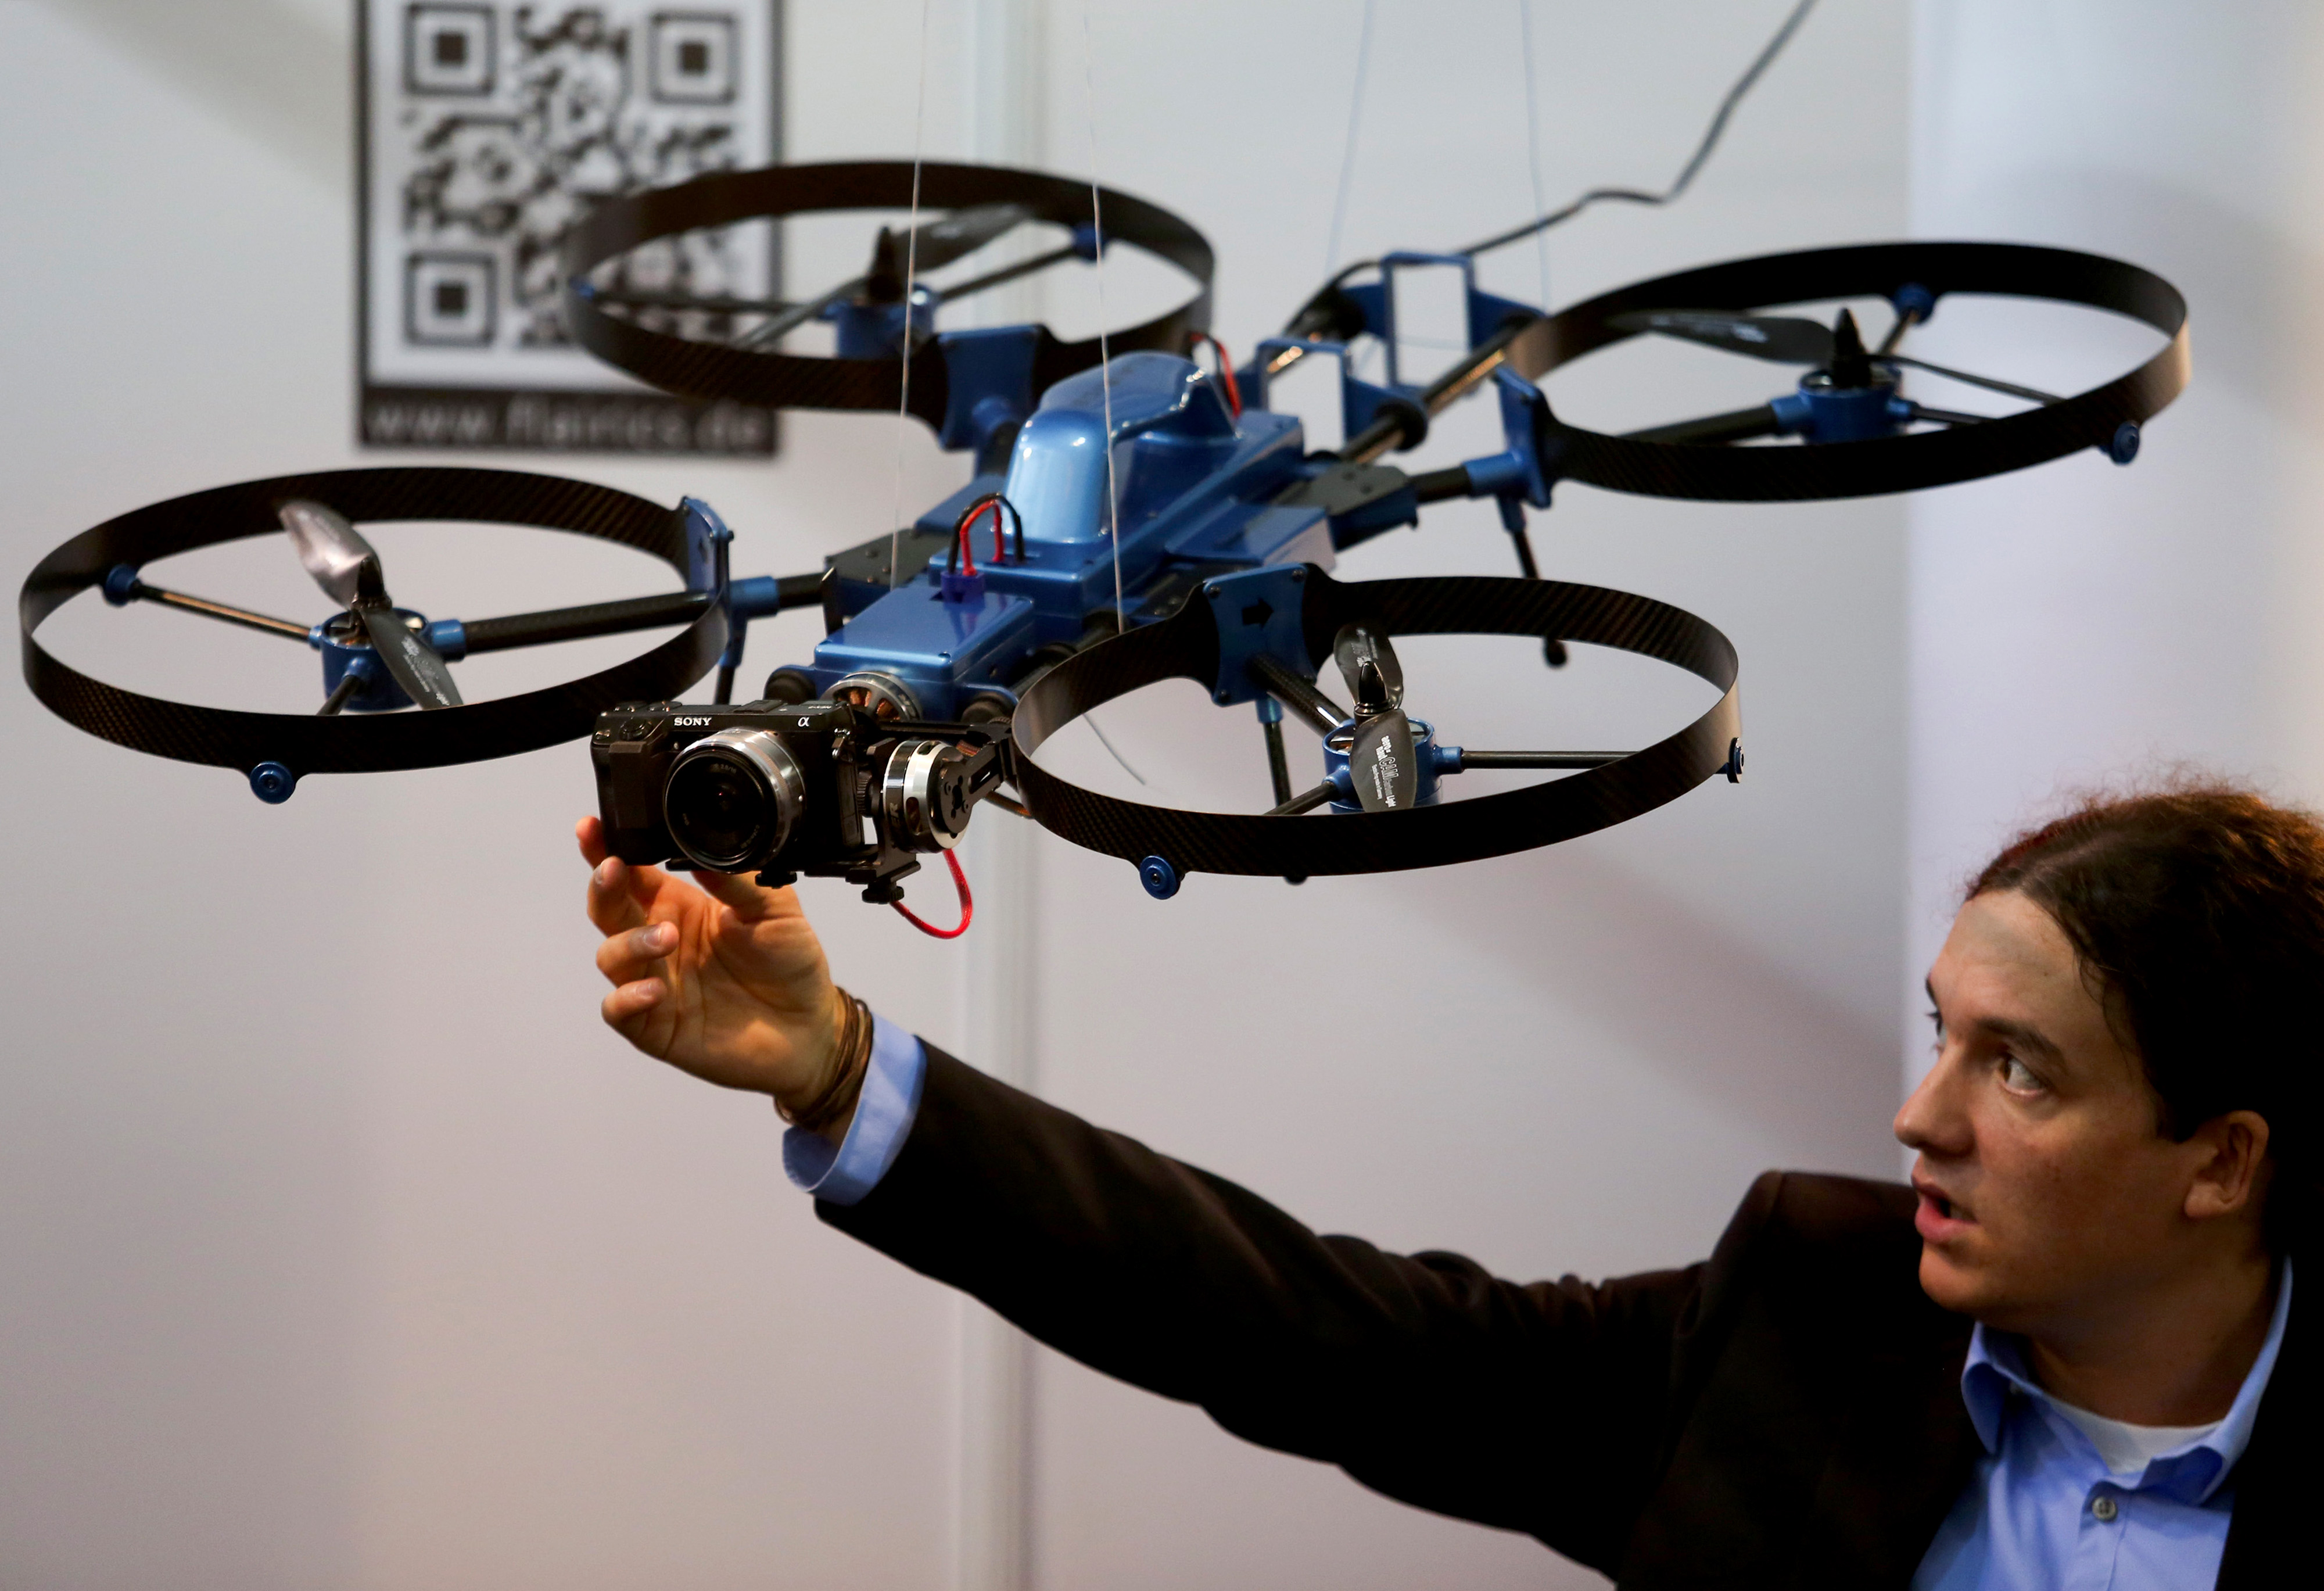 An exhibitor adjusts a Sony Corp. digital camera mounted to a drone, developed by Flairics GmbH and Co., as it hangs on display during the Commercial UAV show in London, U.K., on Tuesday, Oct. 21, 2014.